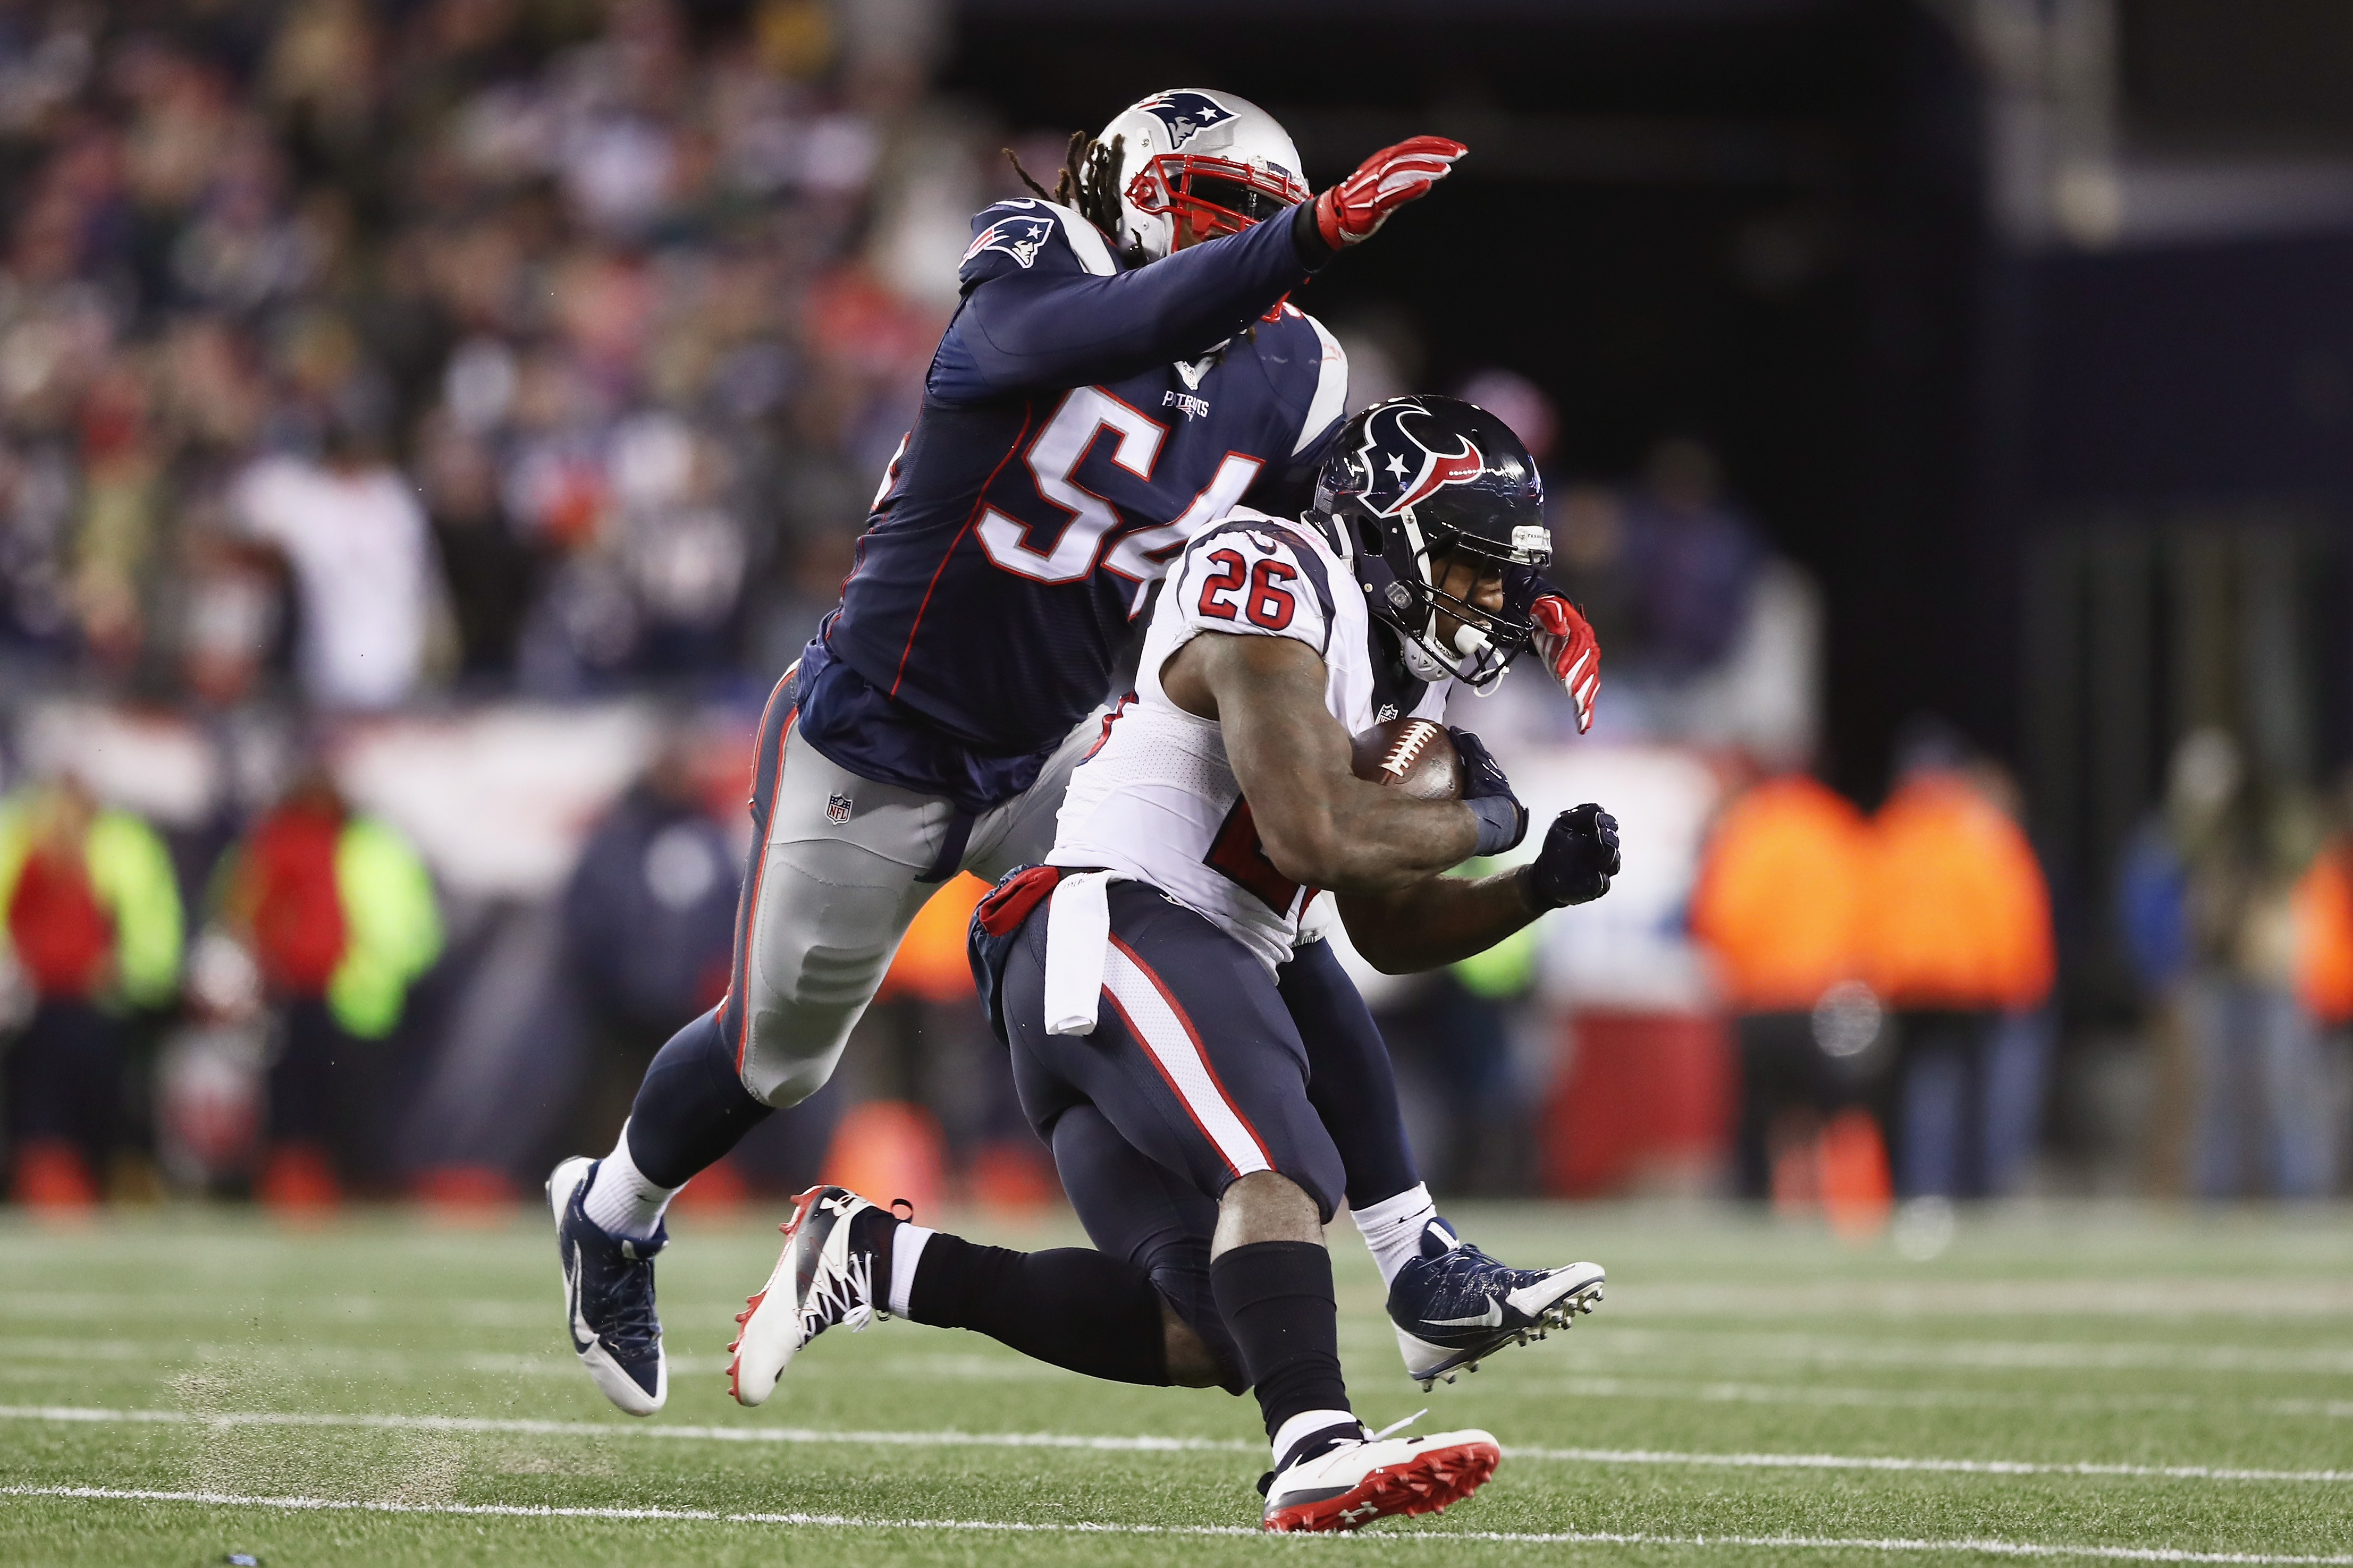 Dont'a Hightower and the New England Patriots defense give up yards - they just don't concede many points.